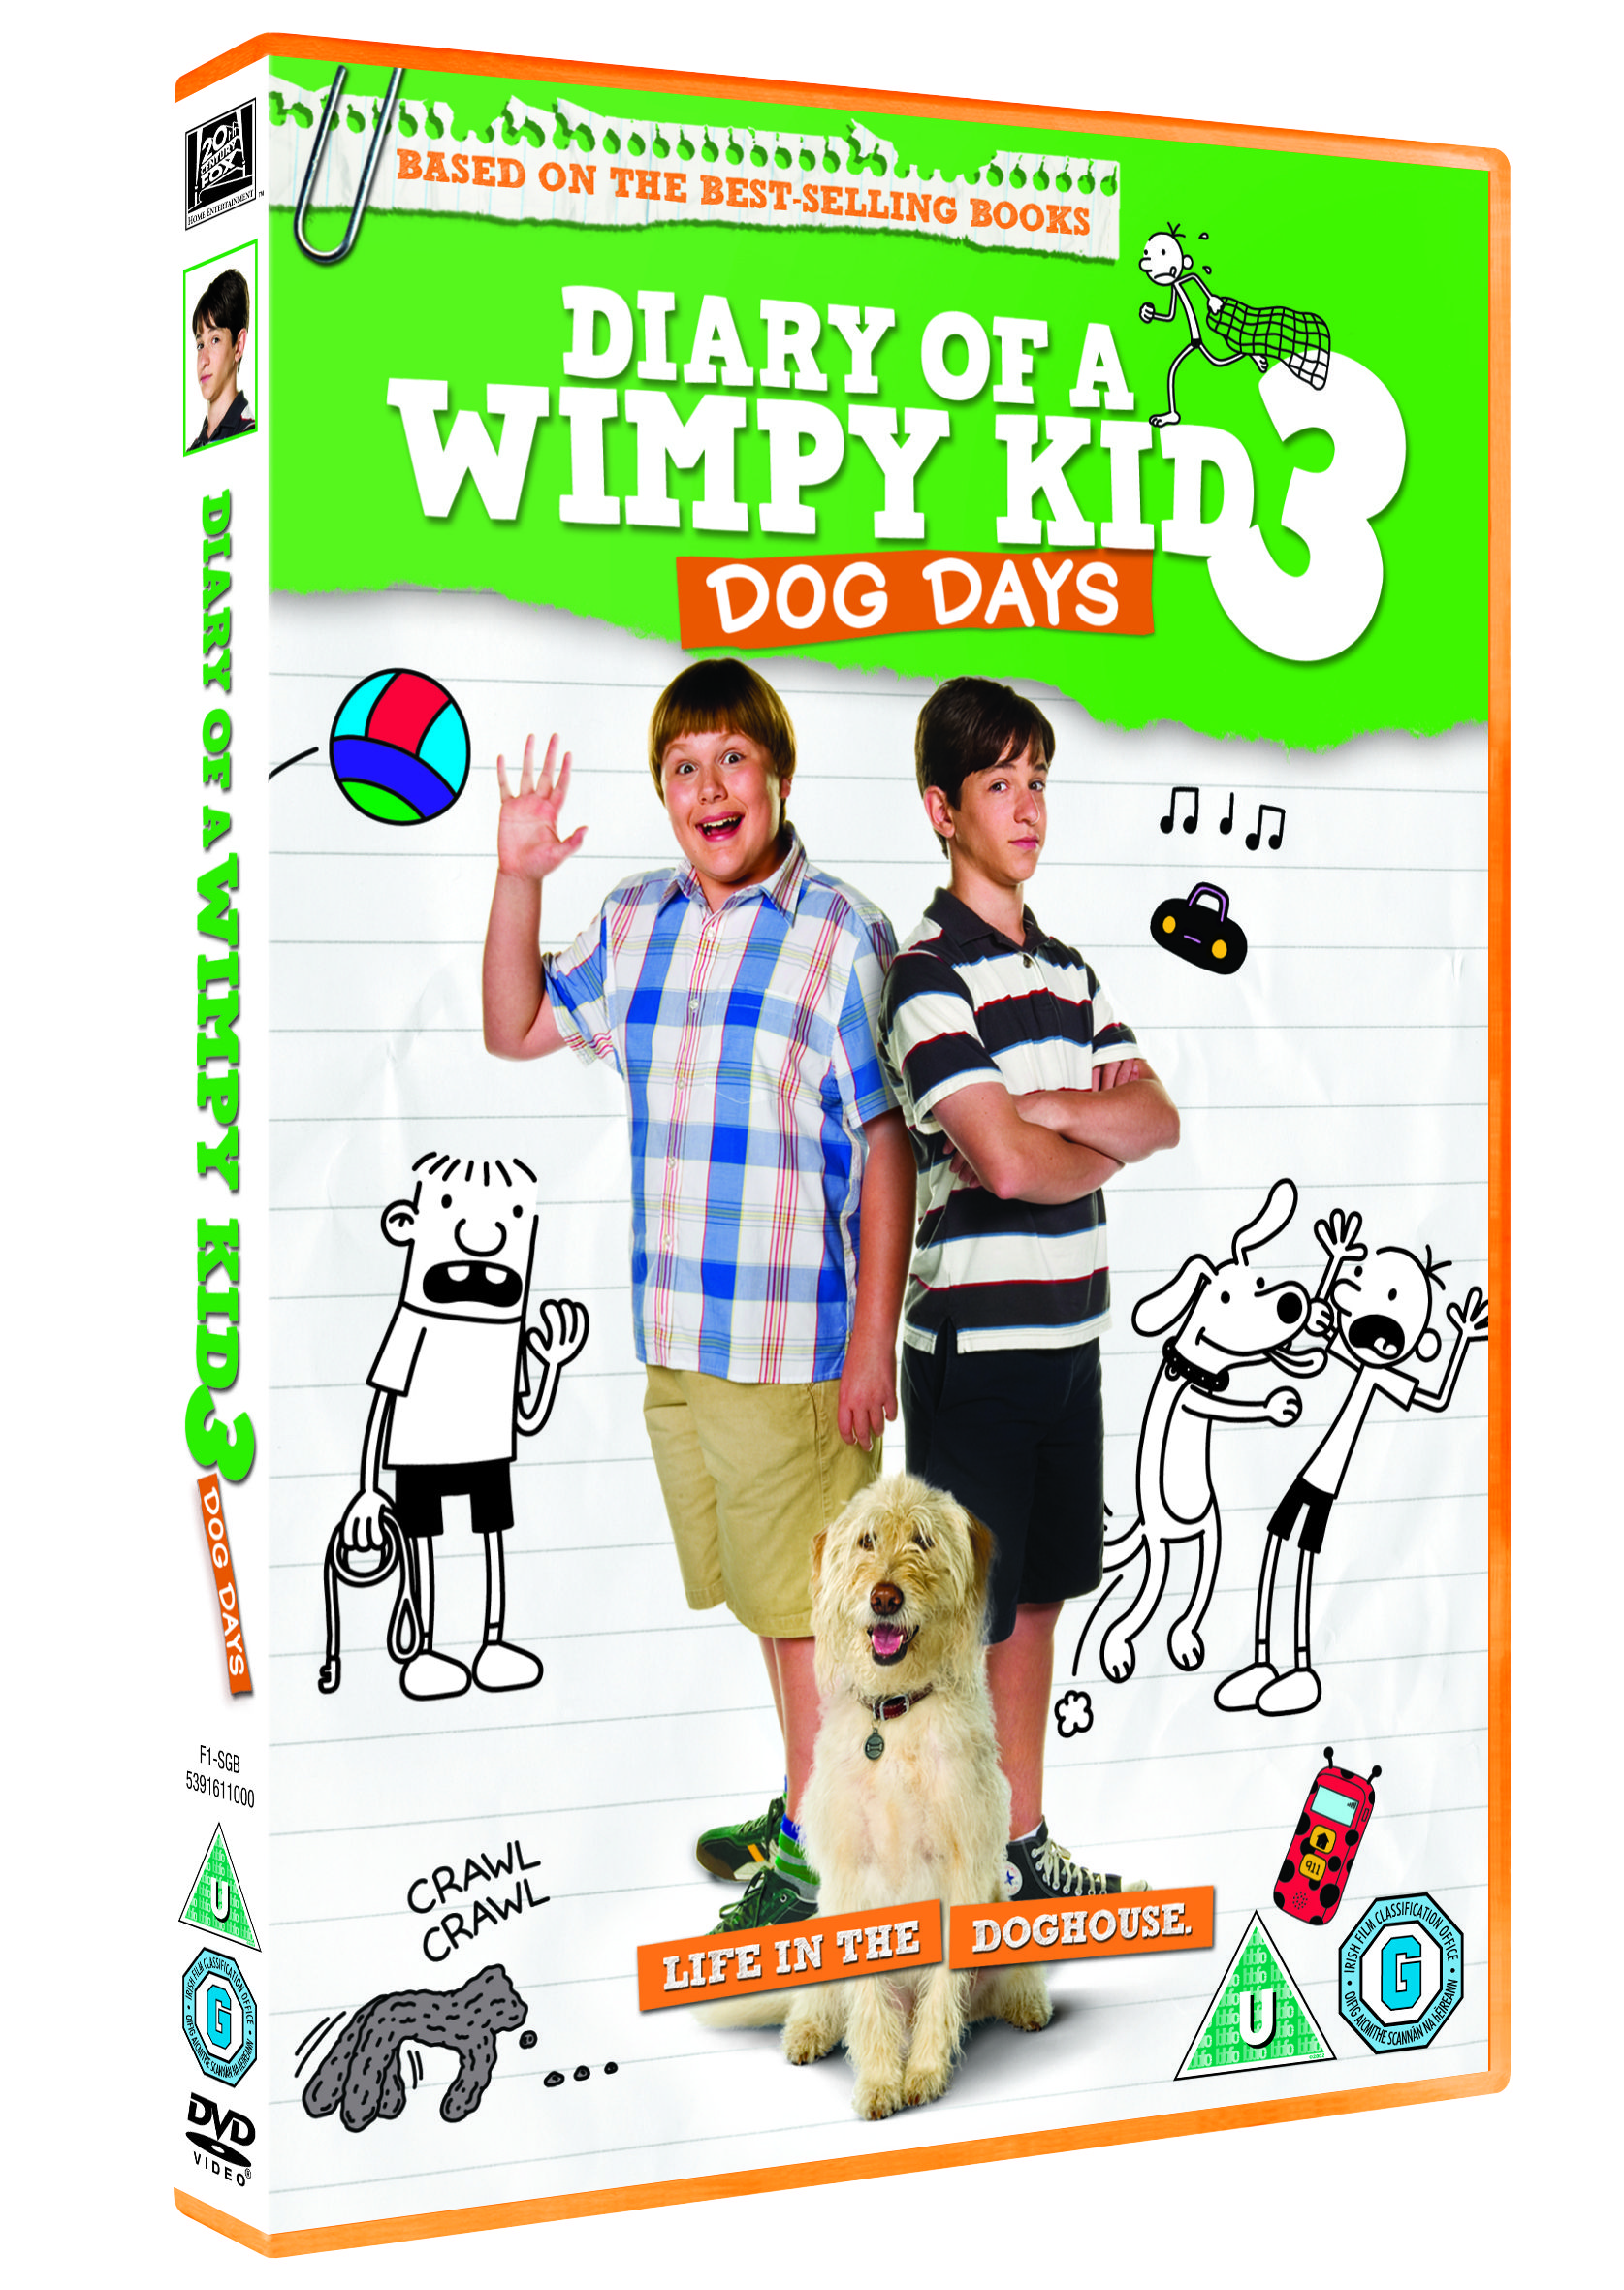 Zoo Wee Mamma The Movie Of The Book Diary Of A Wimpy Kid Dog Days By Jeff Kinney Is Now Out On Dvd Wimpy Kid Wimpy Kid Movie Wimpy